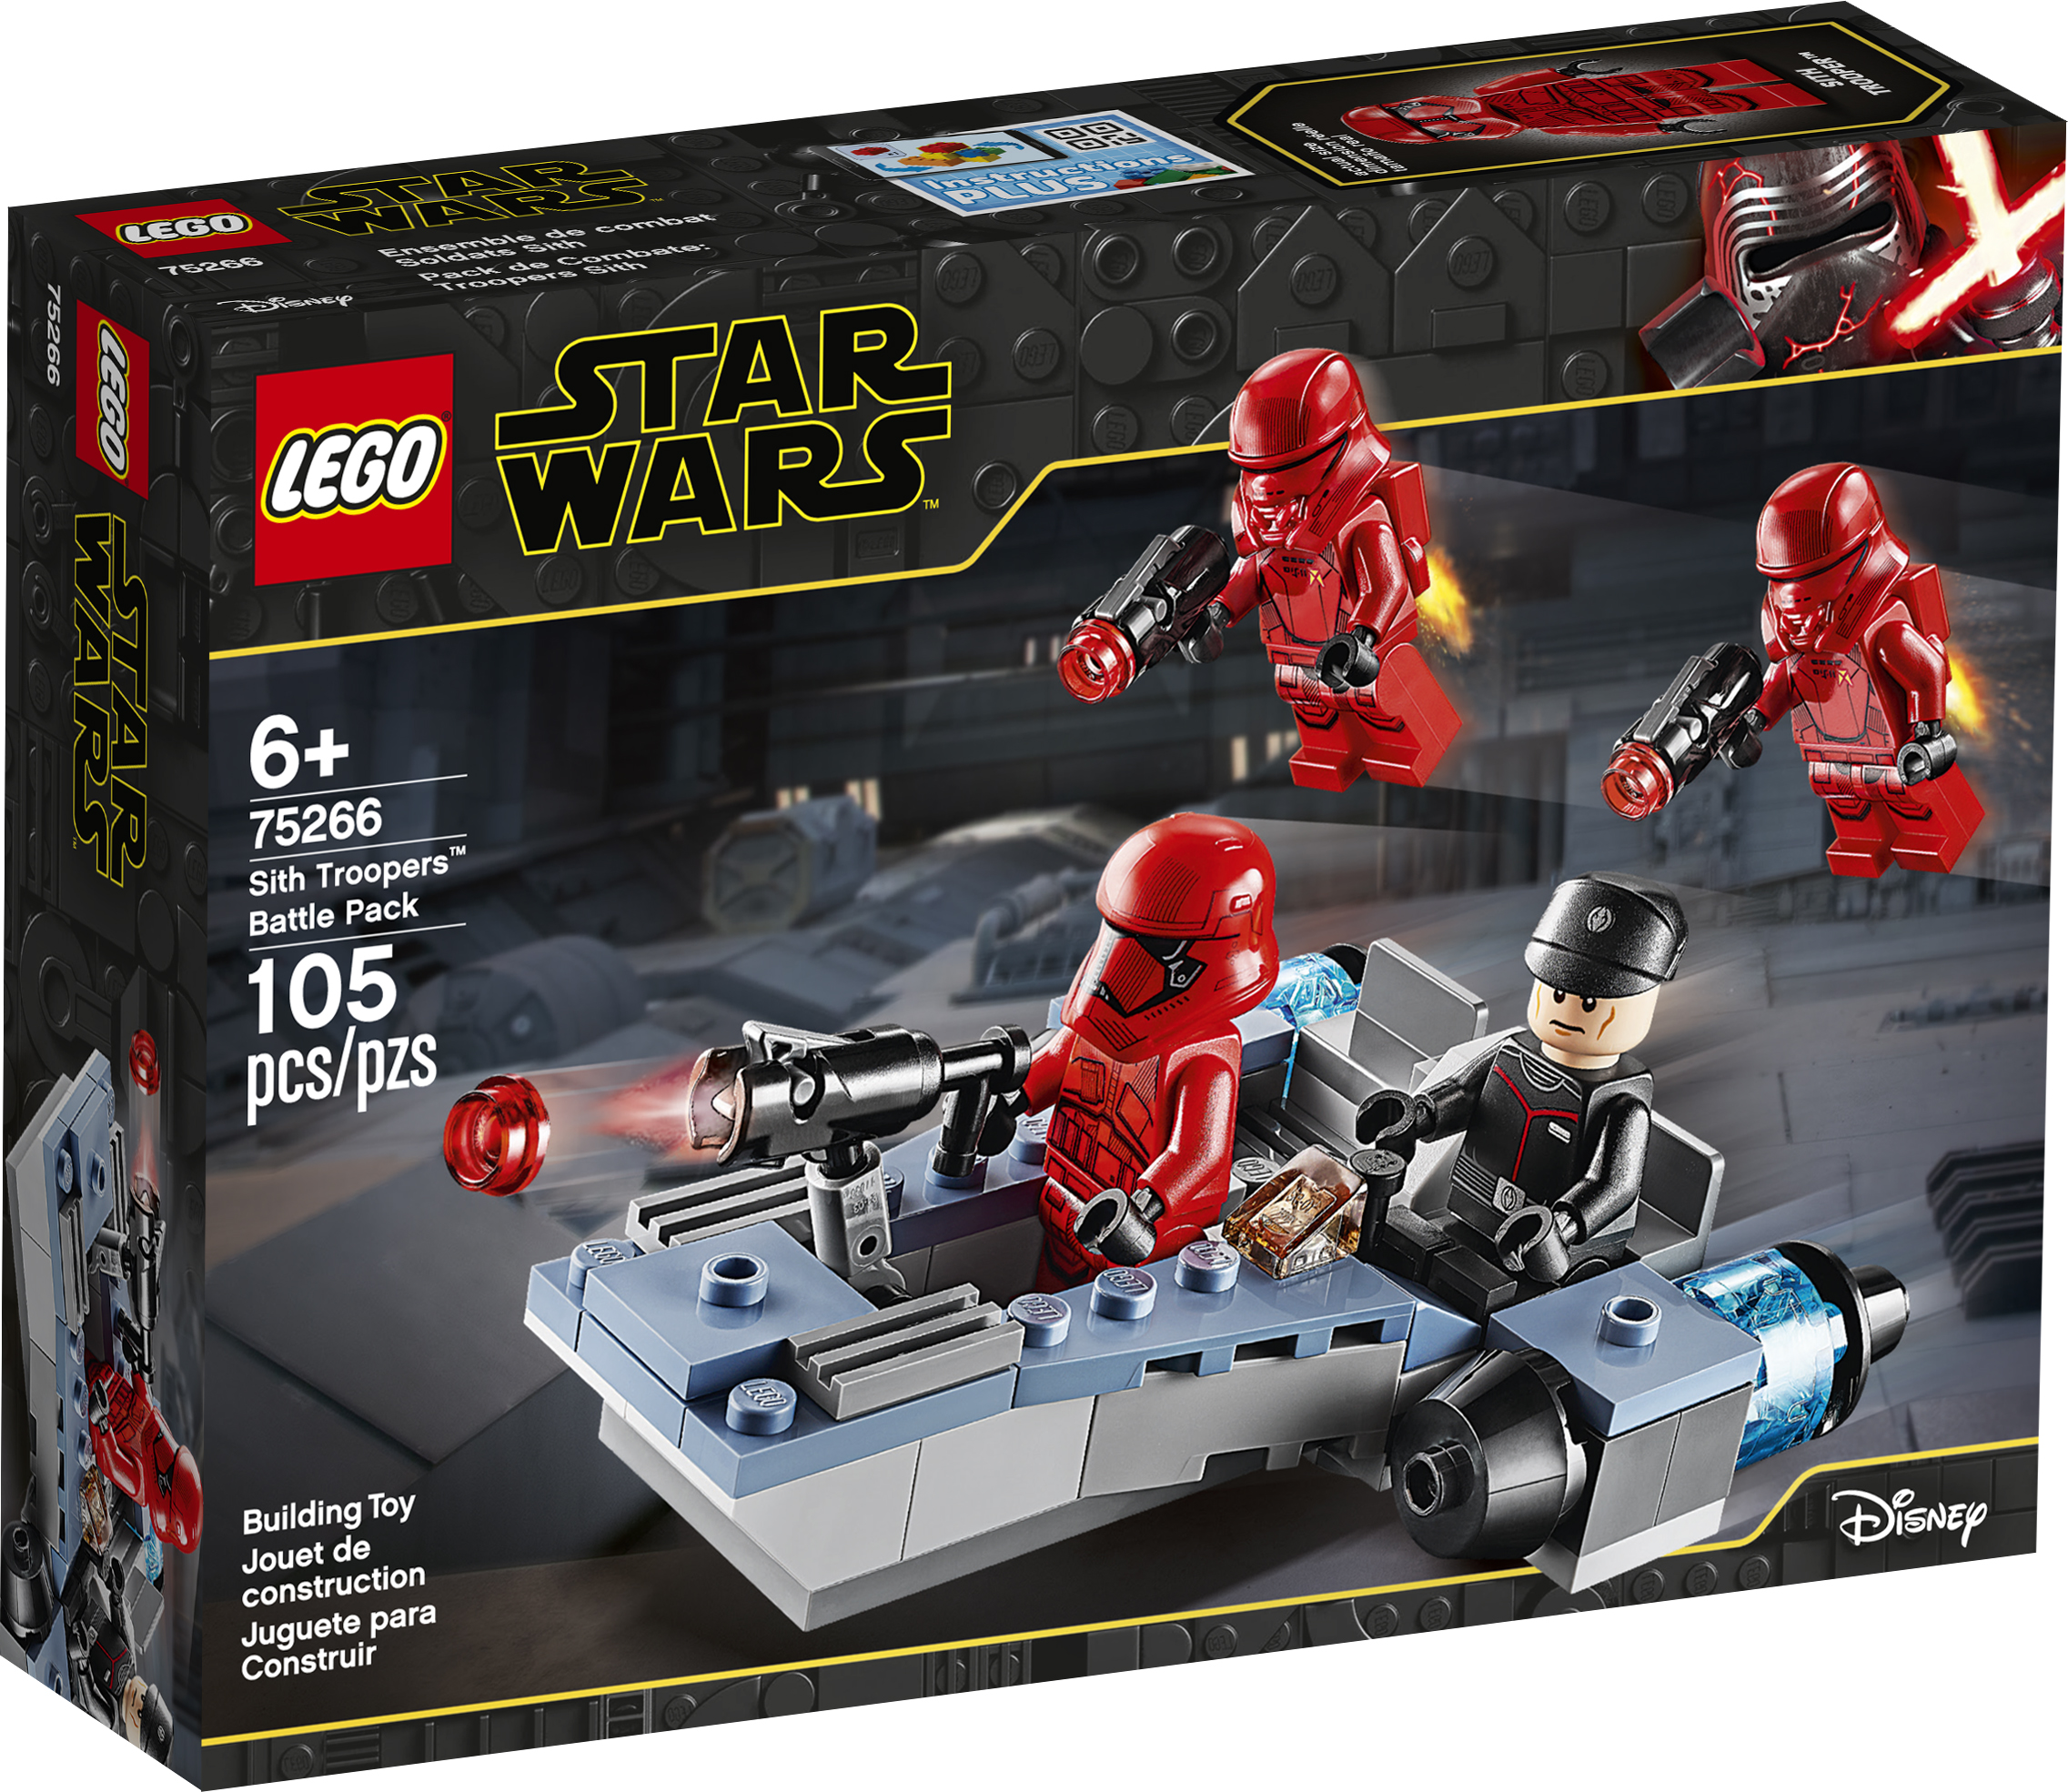 TROS Sith Troopers Lego Battle Pack 1